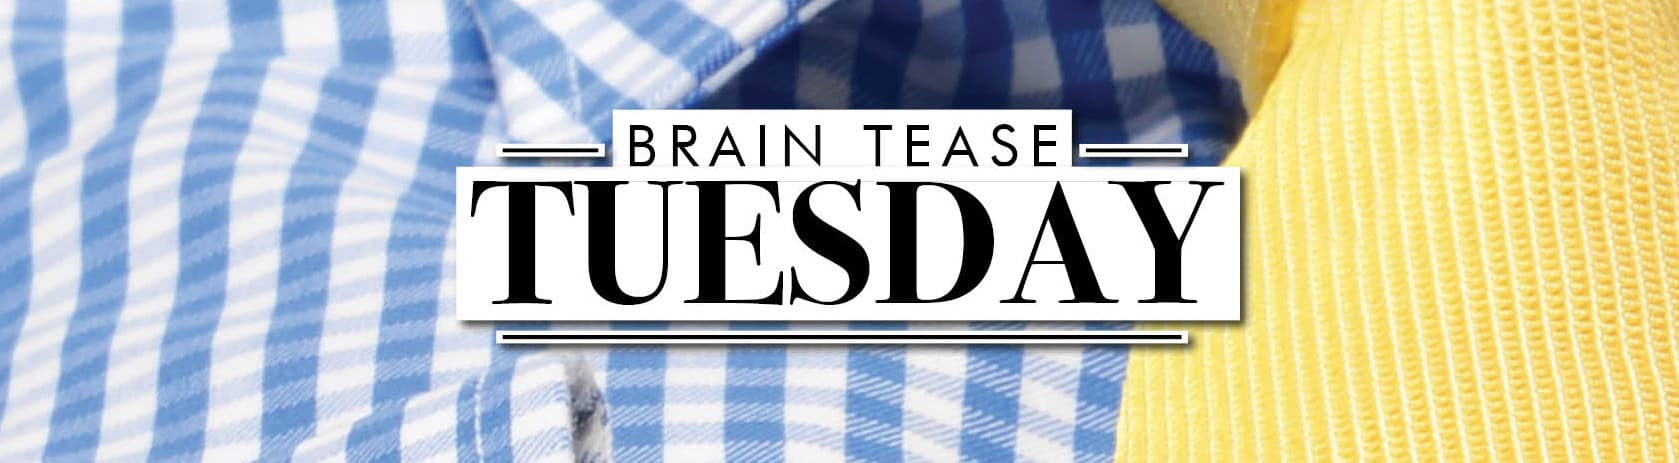 Brain Tease Tuesday Week 24